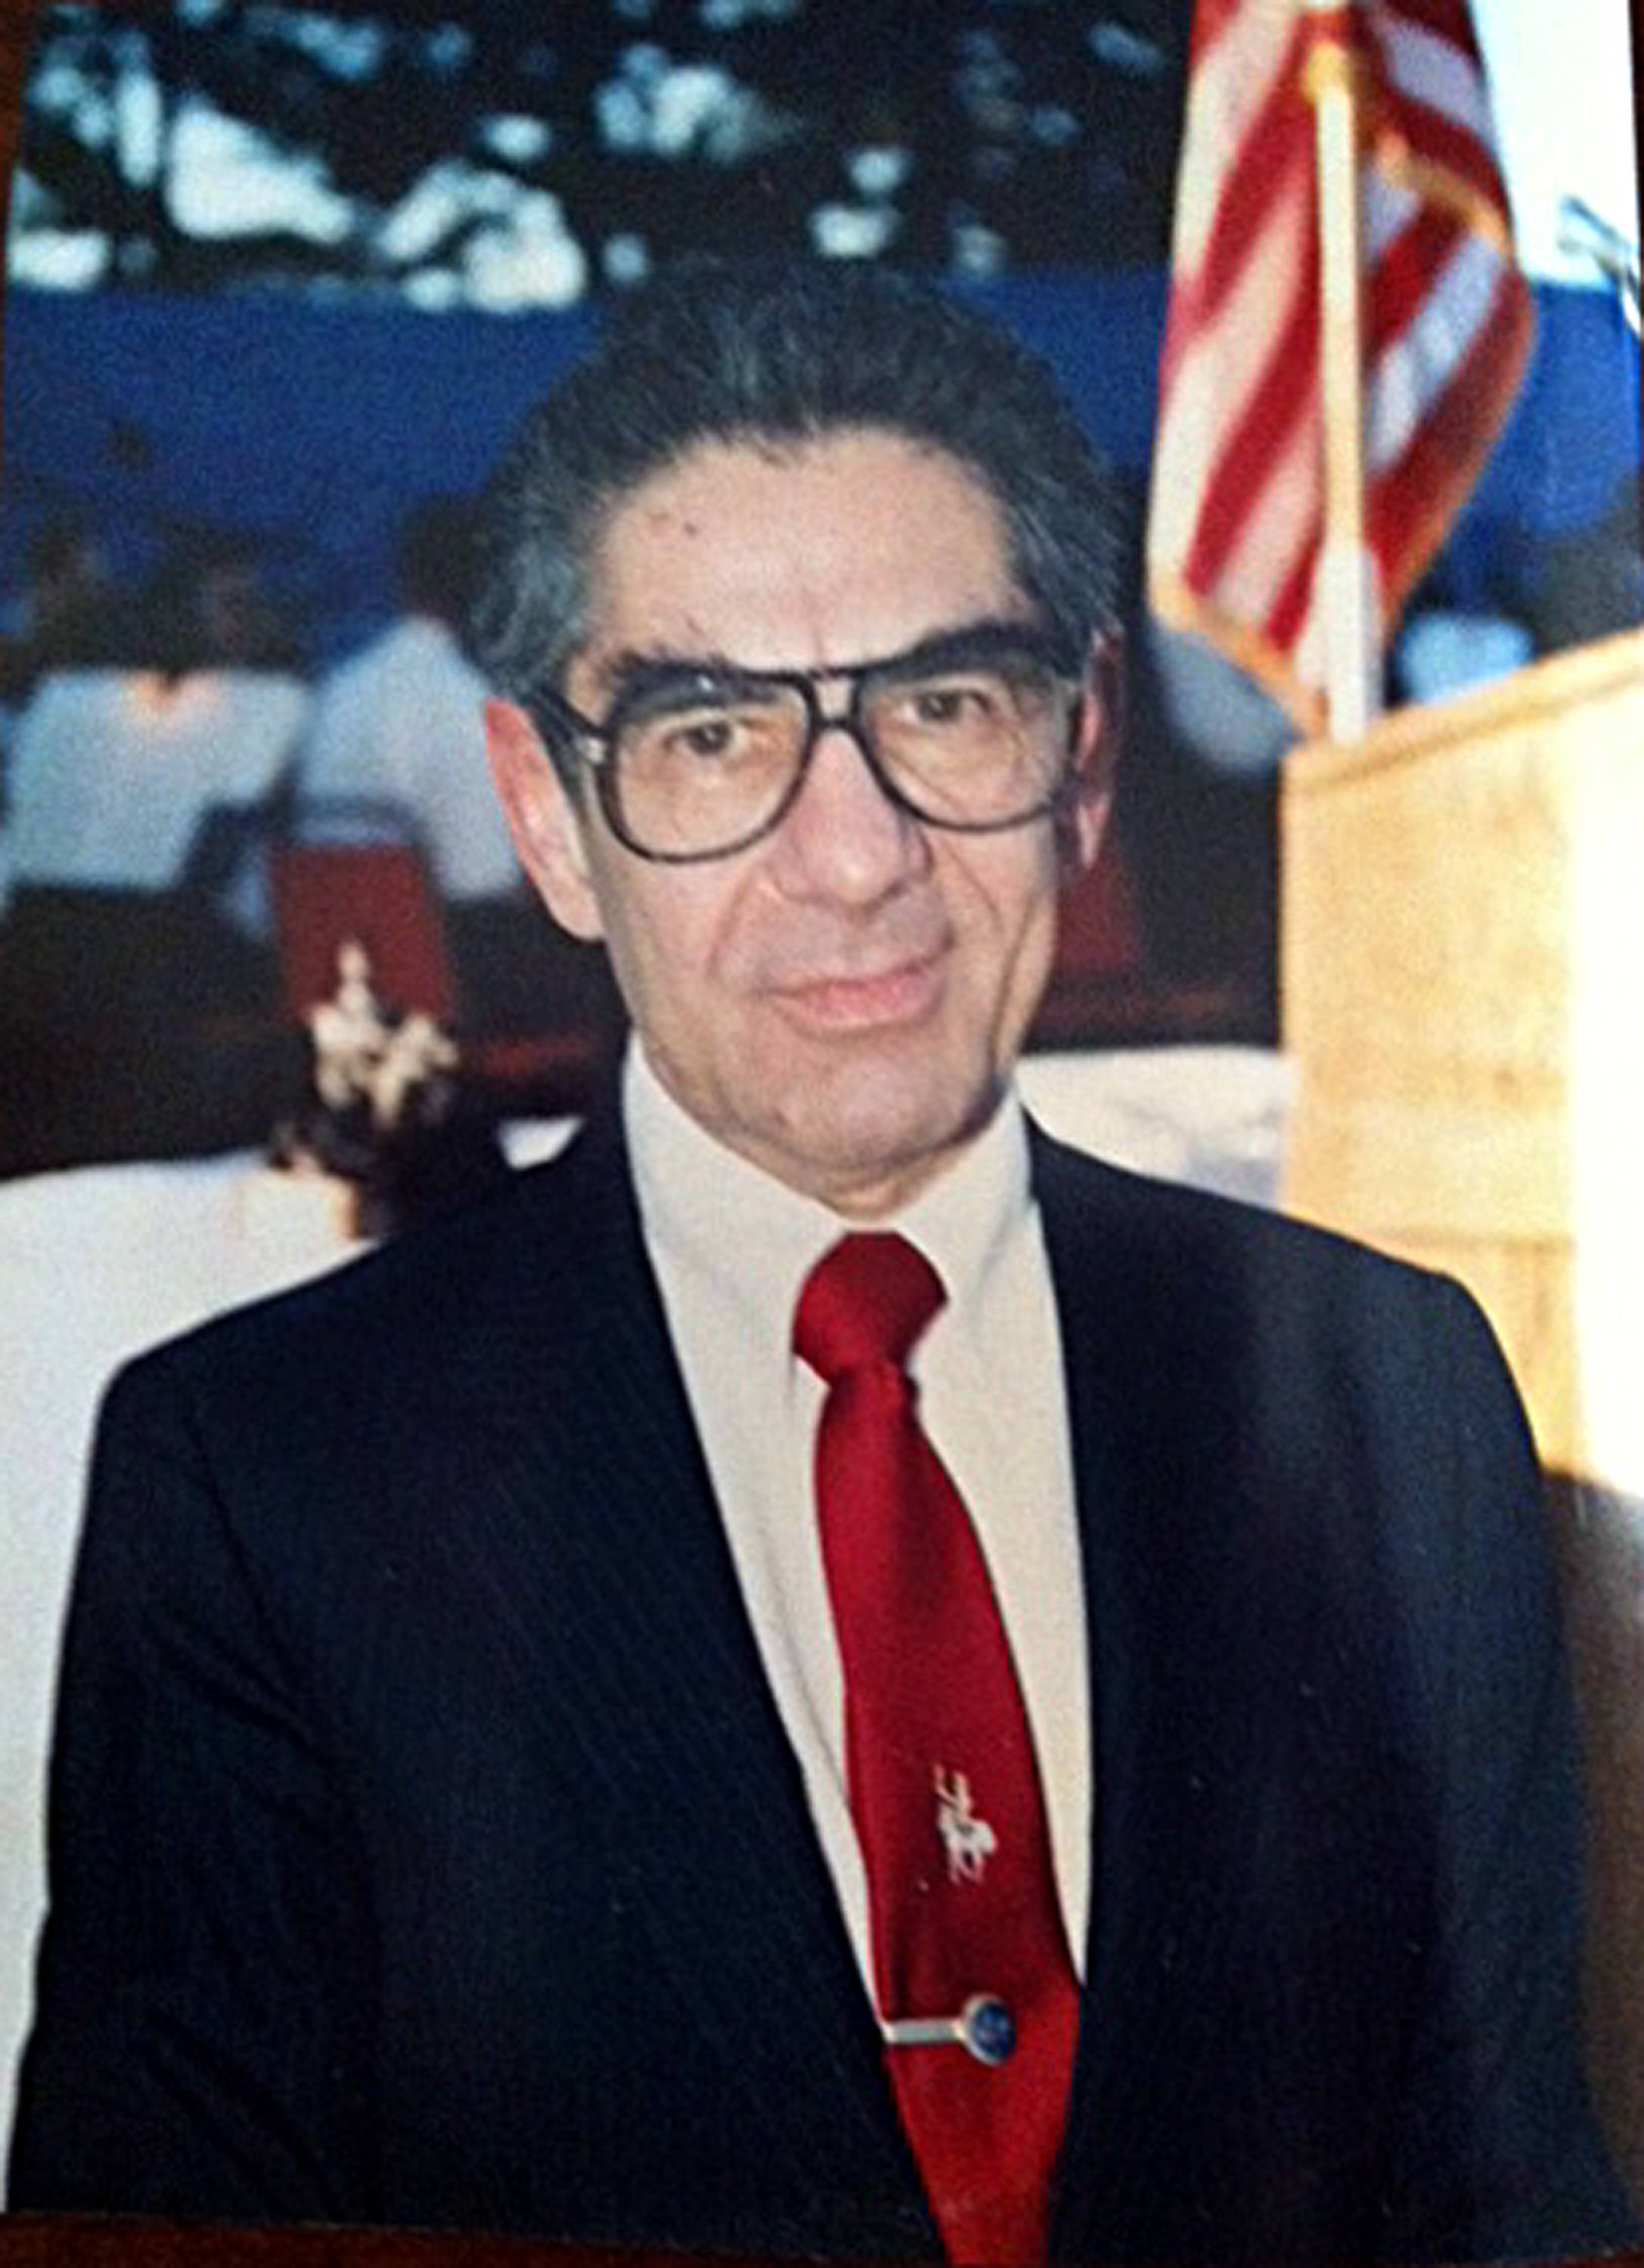 Associated Press/Courtesy Steinfeld familyFormer U.S. Surgeon General Jesse Steinfeld, who became the first surgeon general ever forced out of office by the president after campaigning against the dangers of smoking during the Richard Nixon era, has died in Southern California. He was 87.